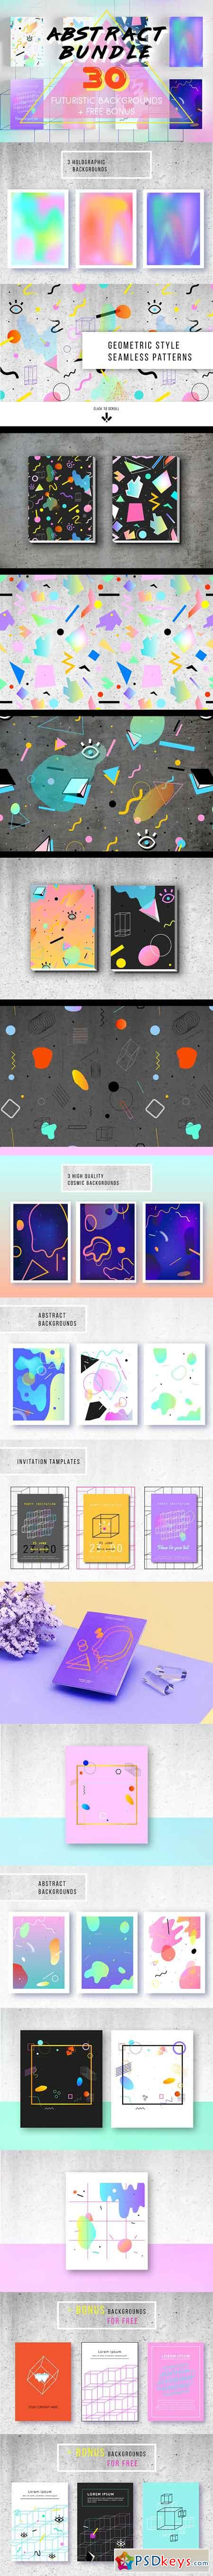 Abstract Bundle. 30 Prints + BONUS 759287